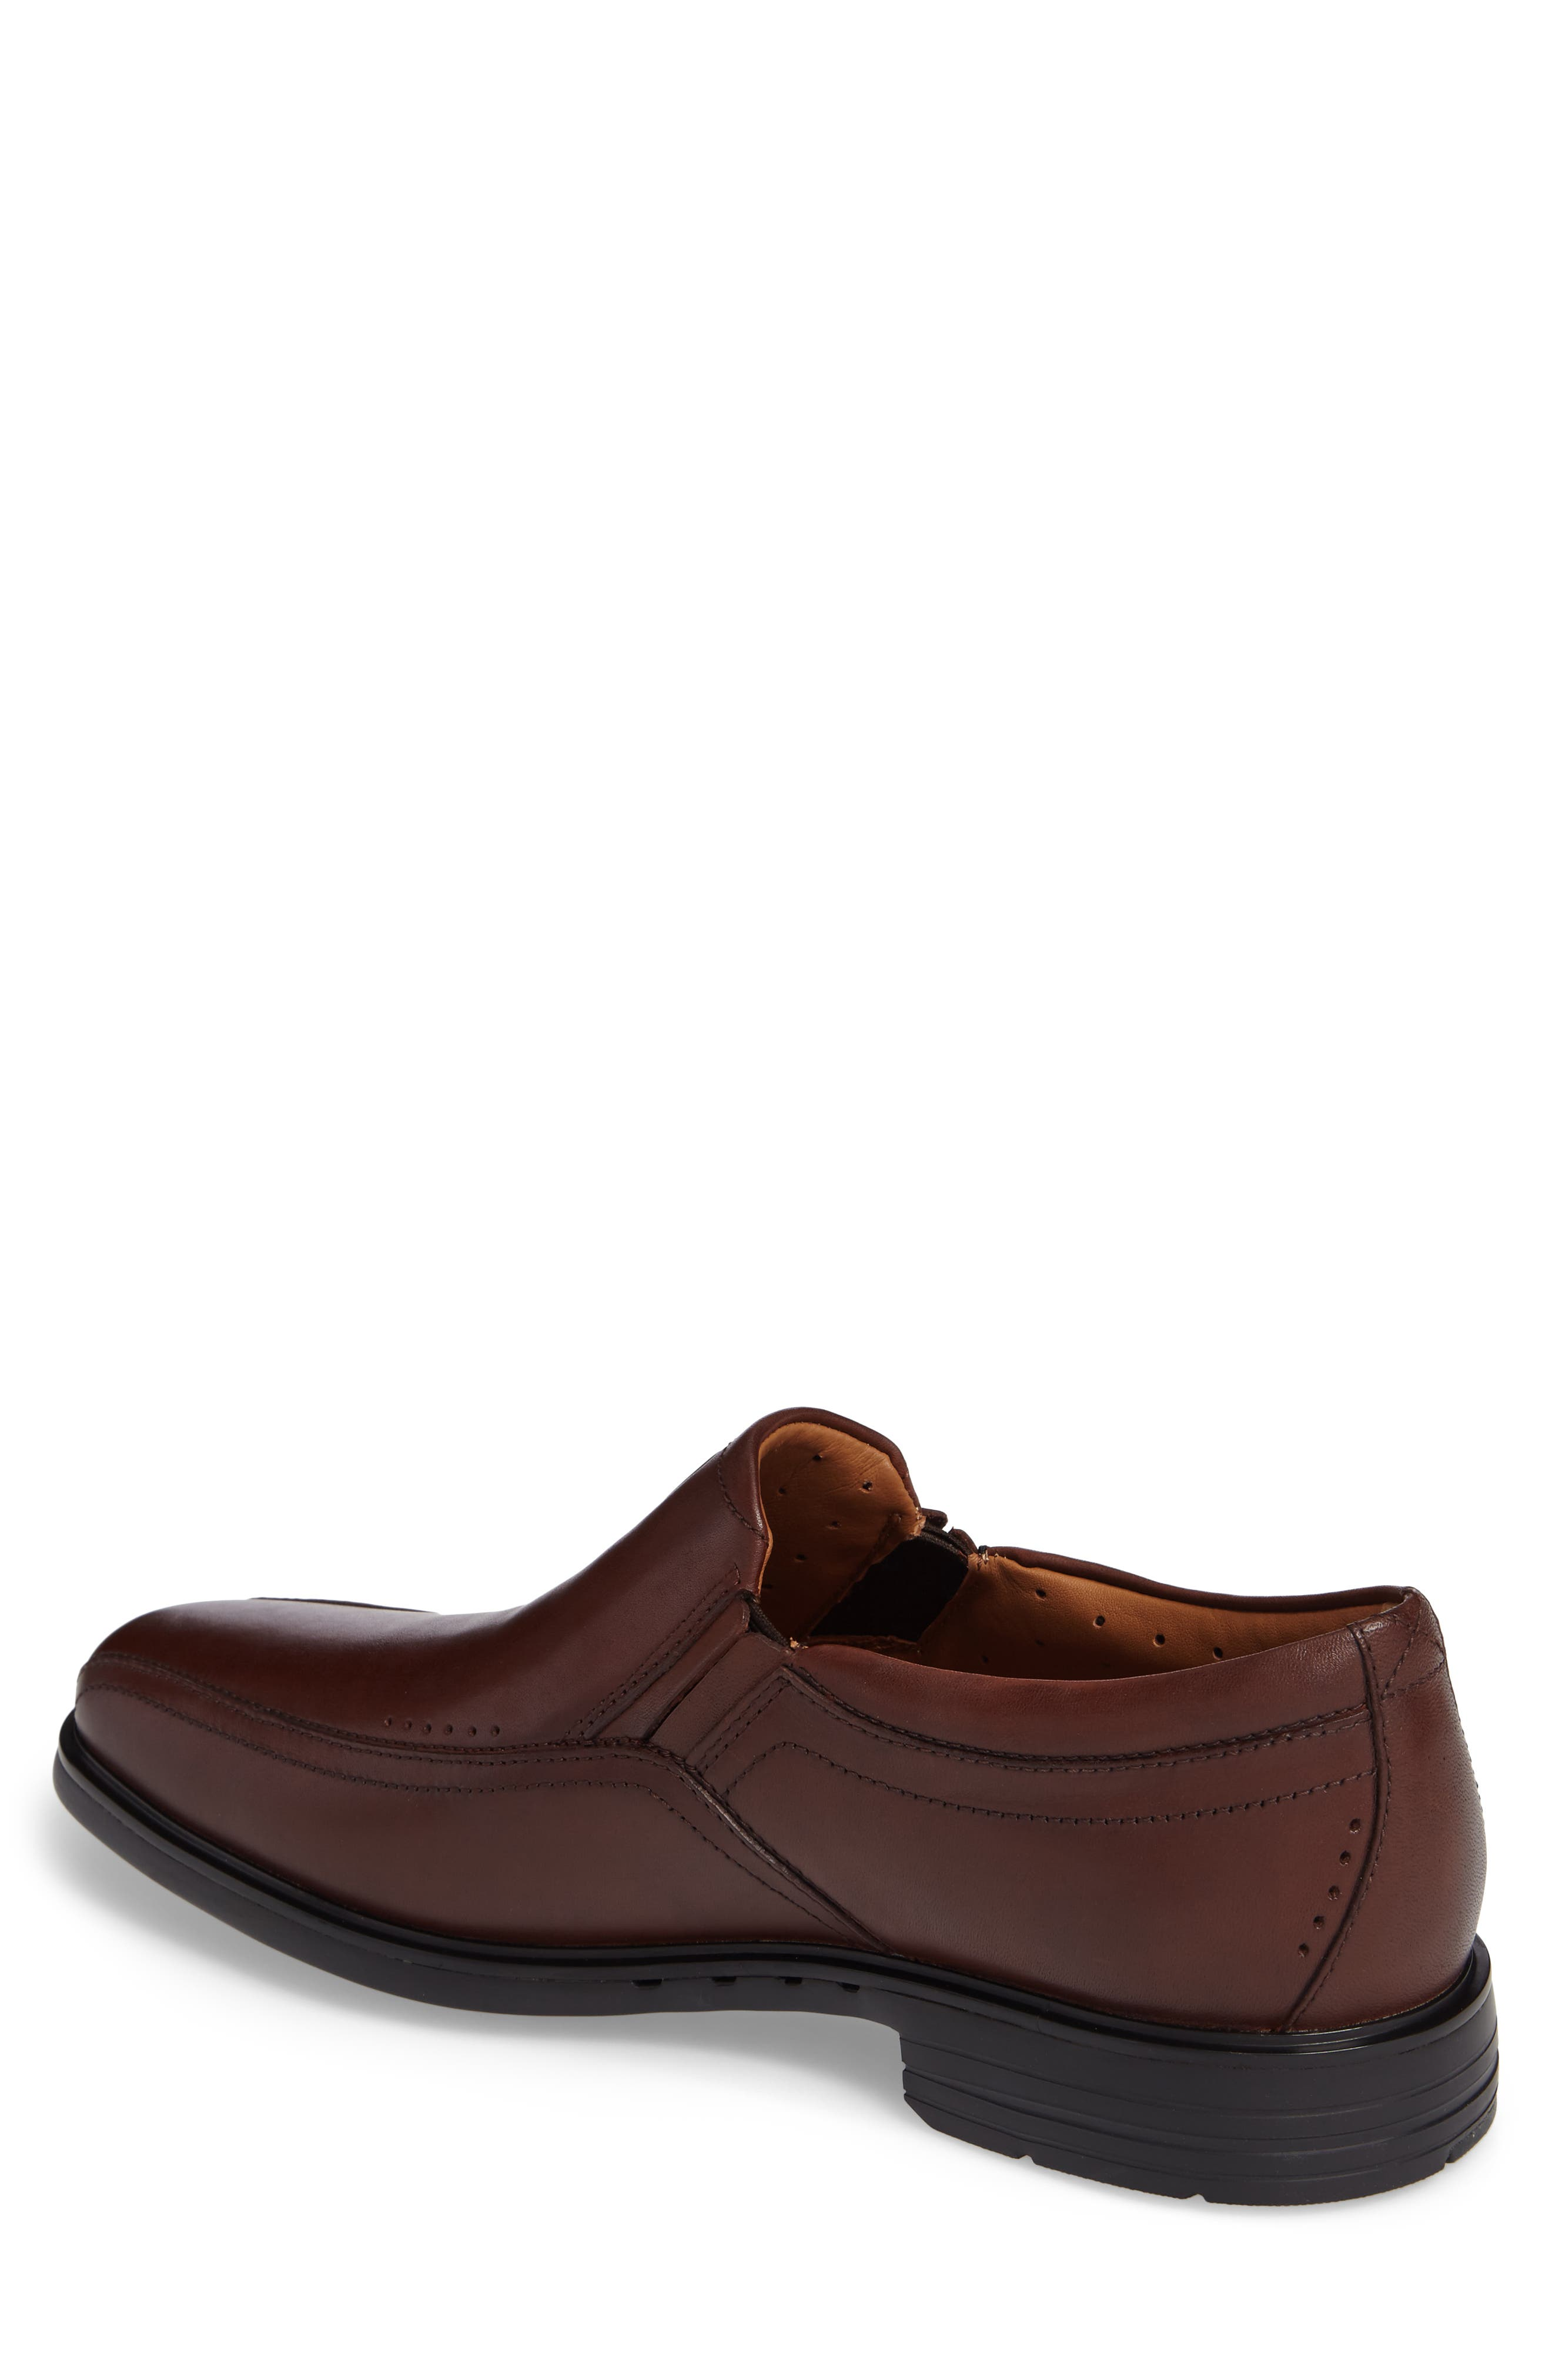 Un.Sheridan Go Loafer,                             Alternate thumbnail 2, color,                             Brown Leather